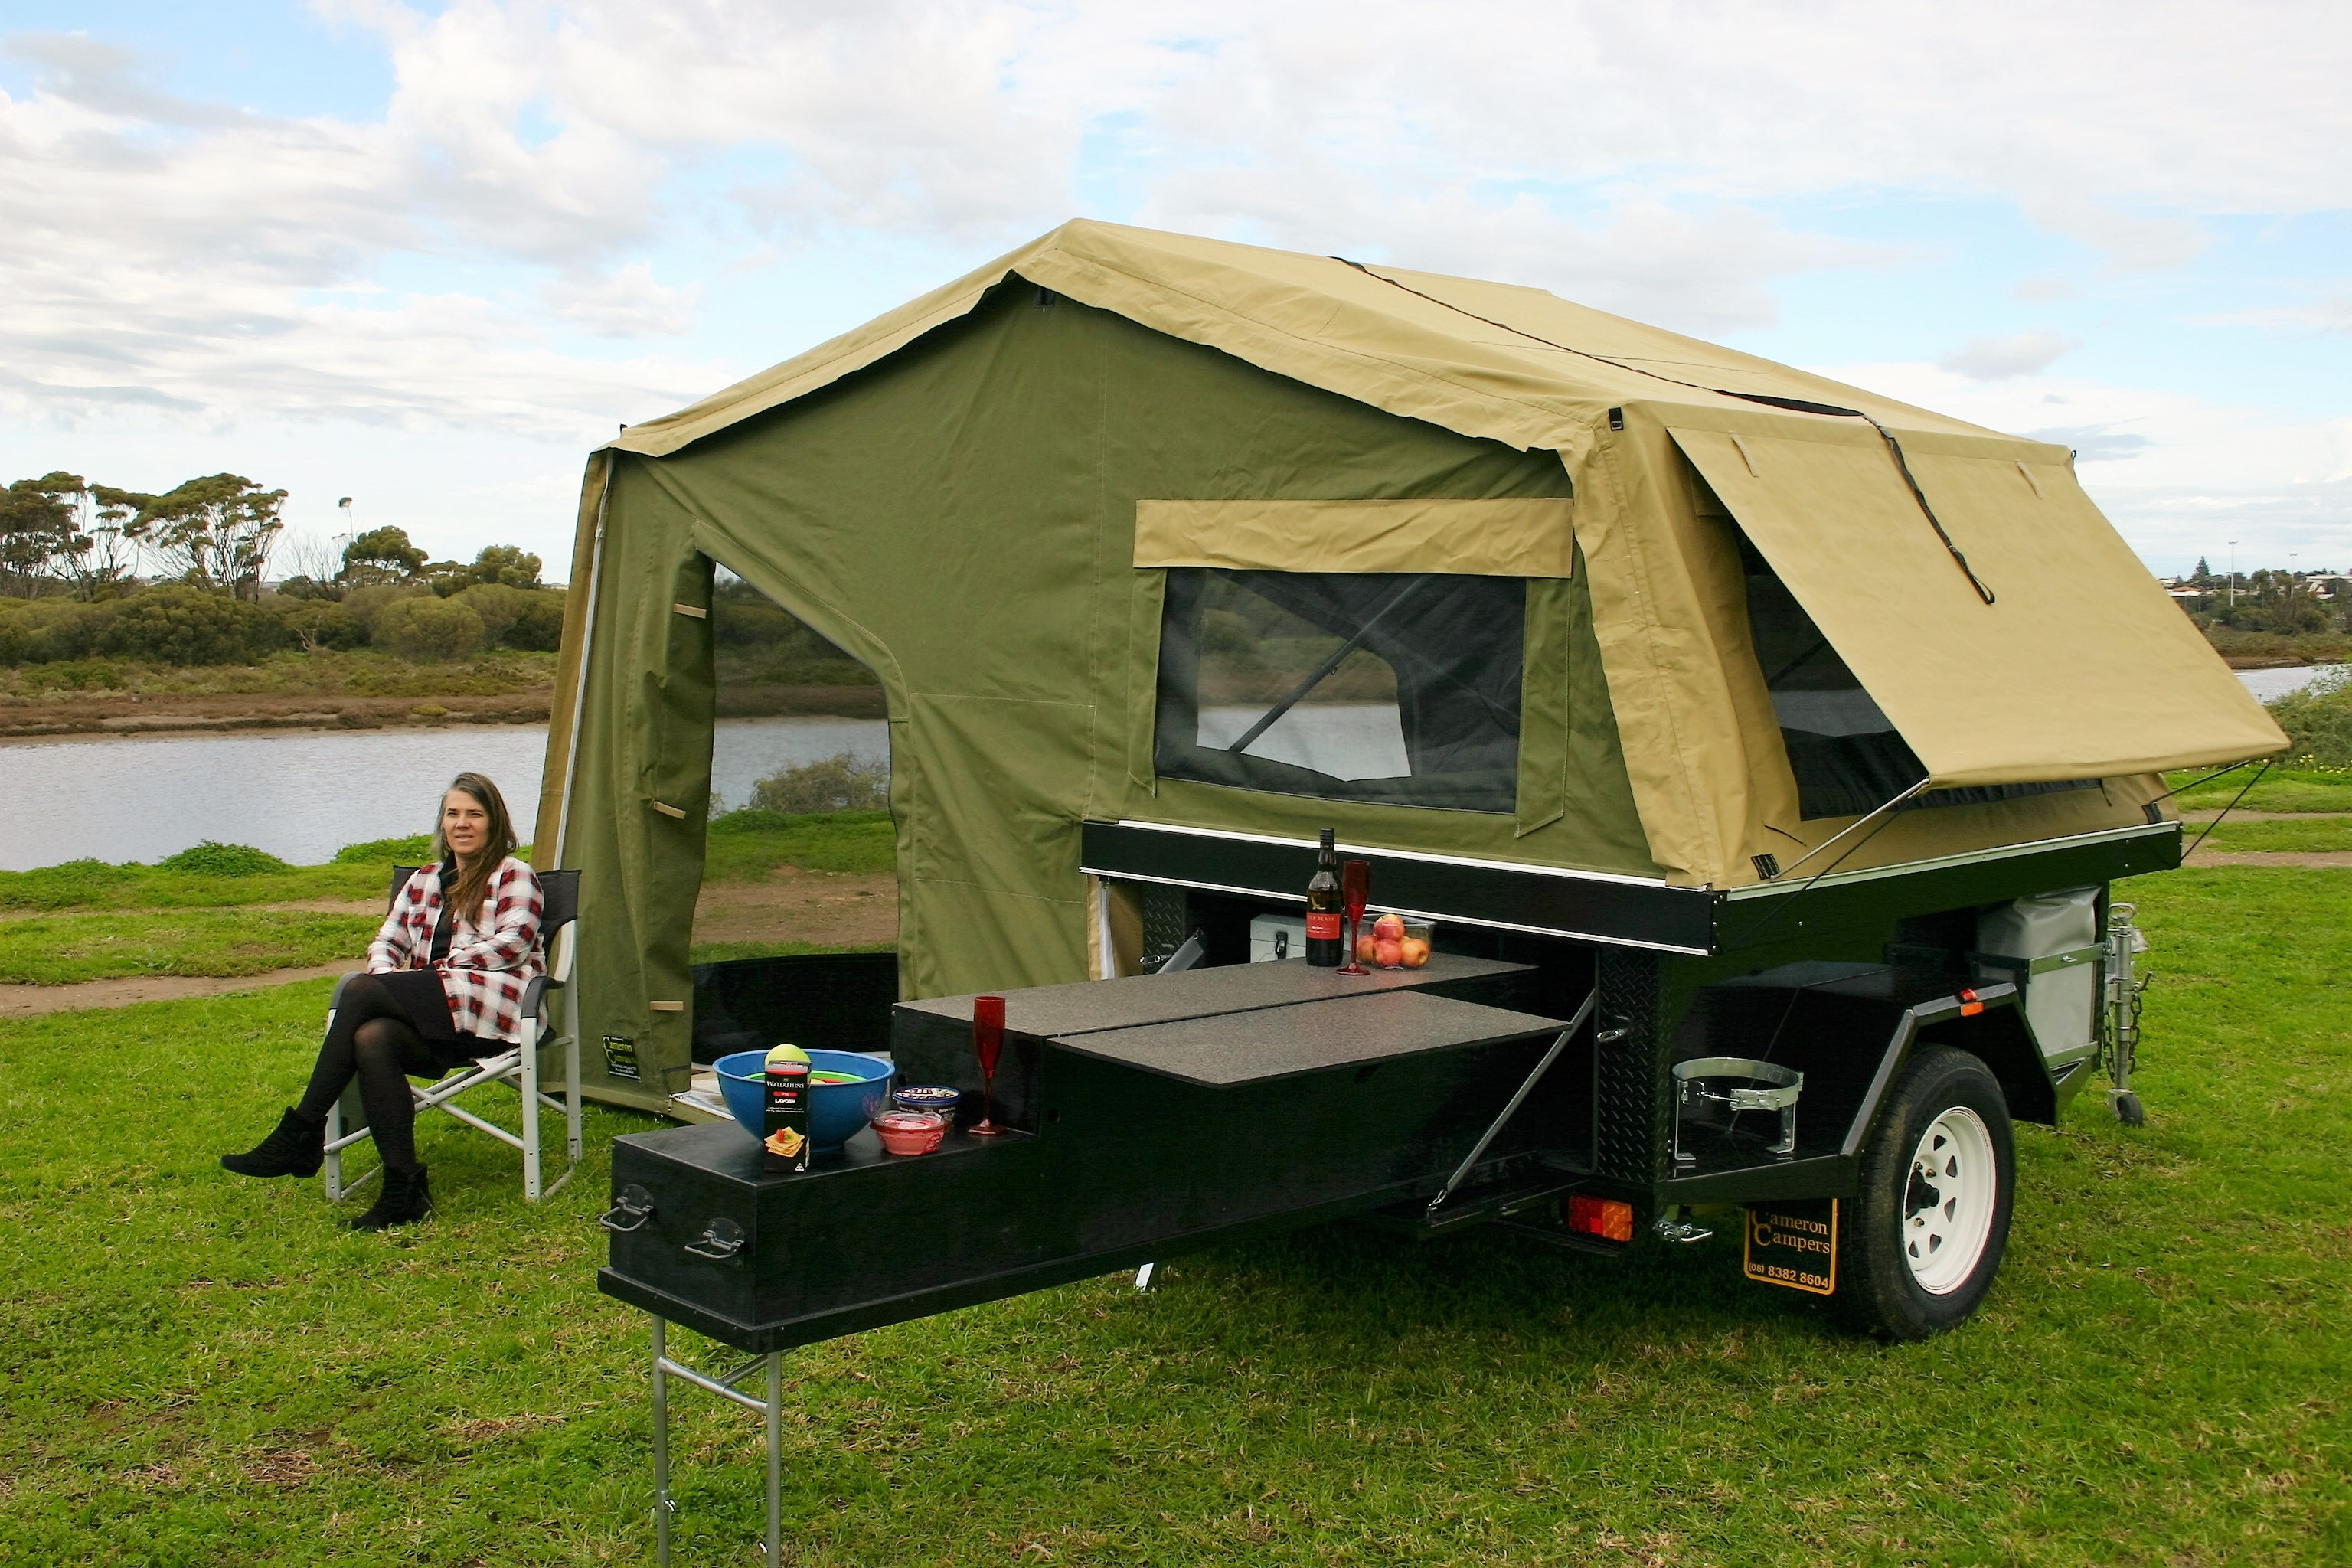 Elegant NEW 2011 DELUXE 12 CAMPER  Camper Trailer Tents Brisbane  Trailer